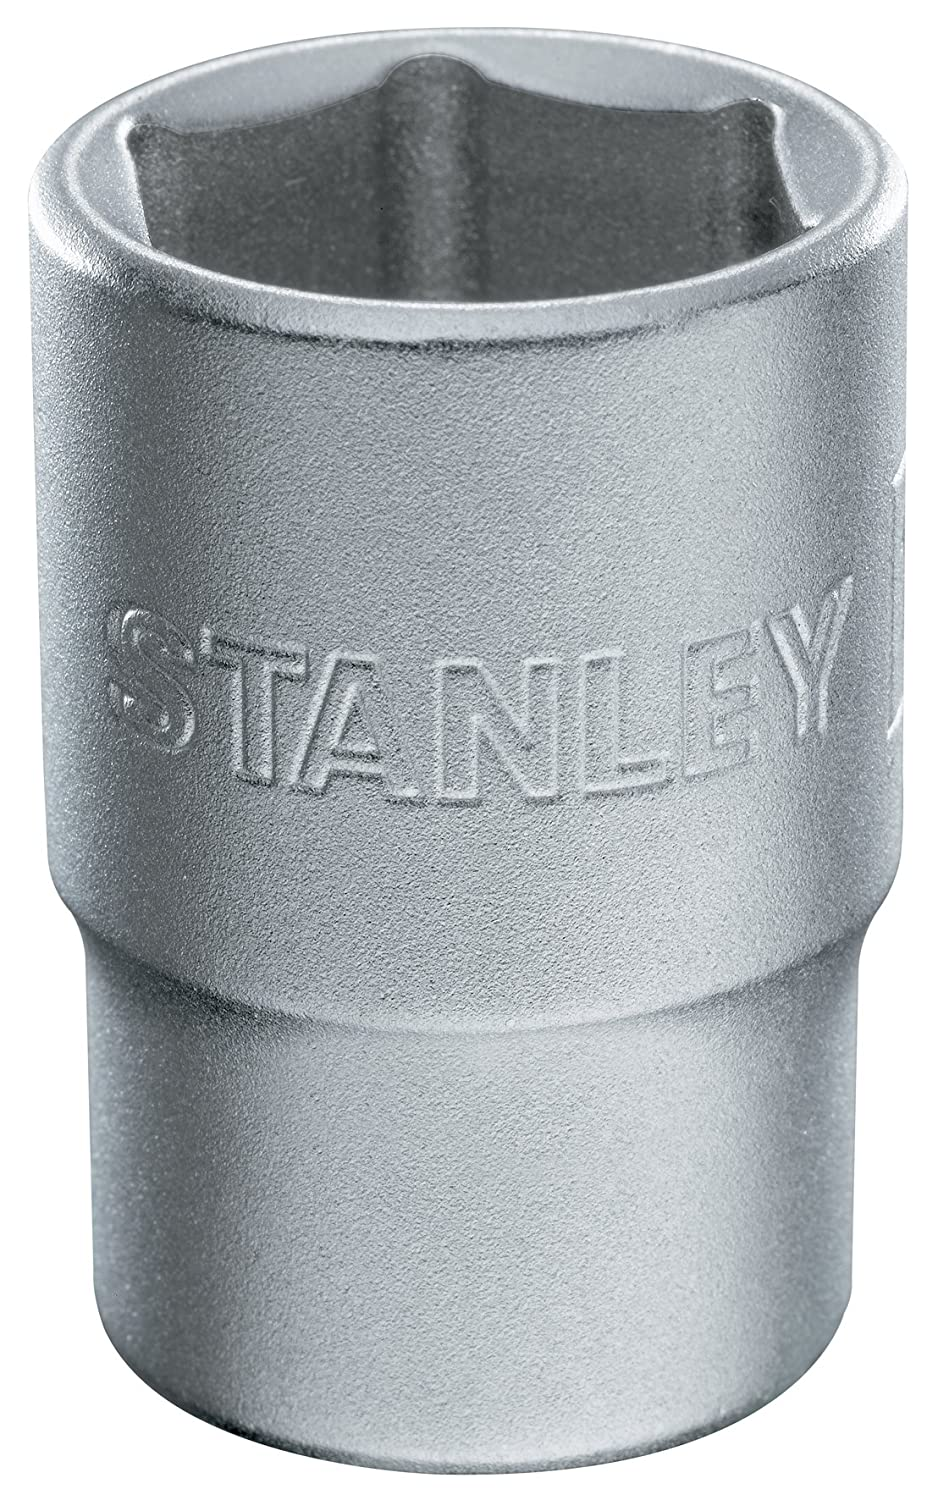 Stanley 1-17-256 Douille 1//2 6 pans 29 mm